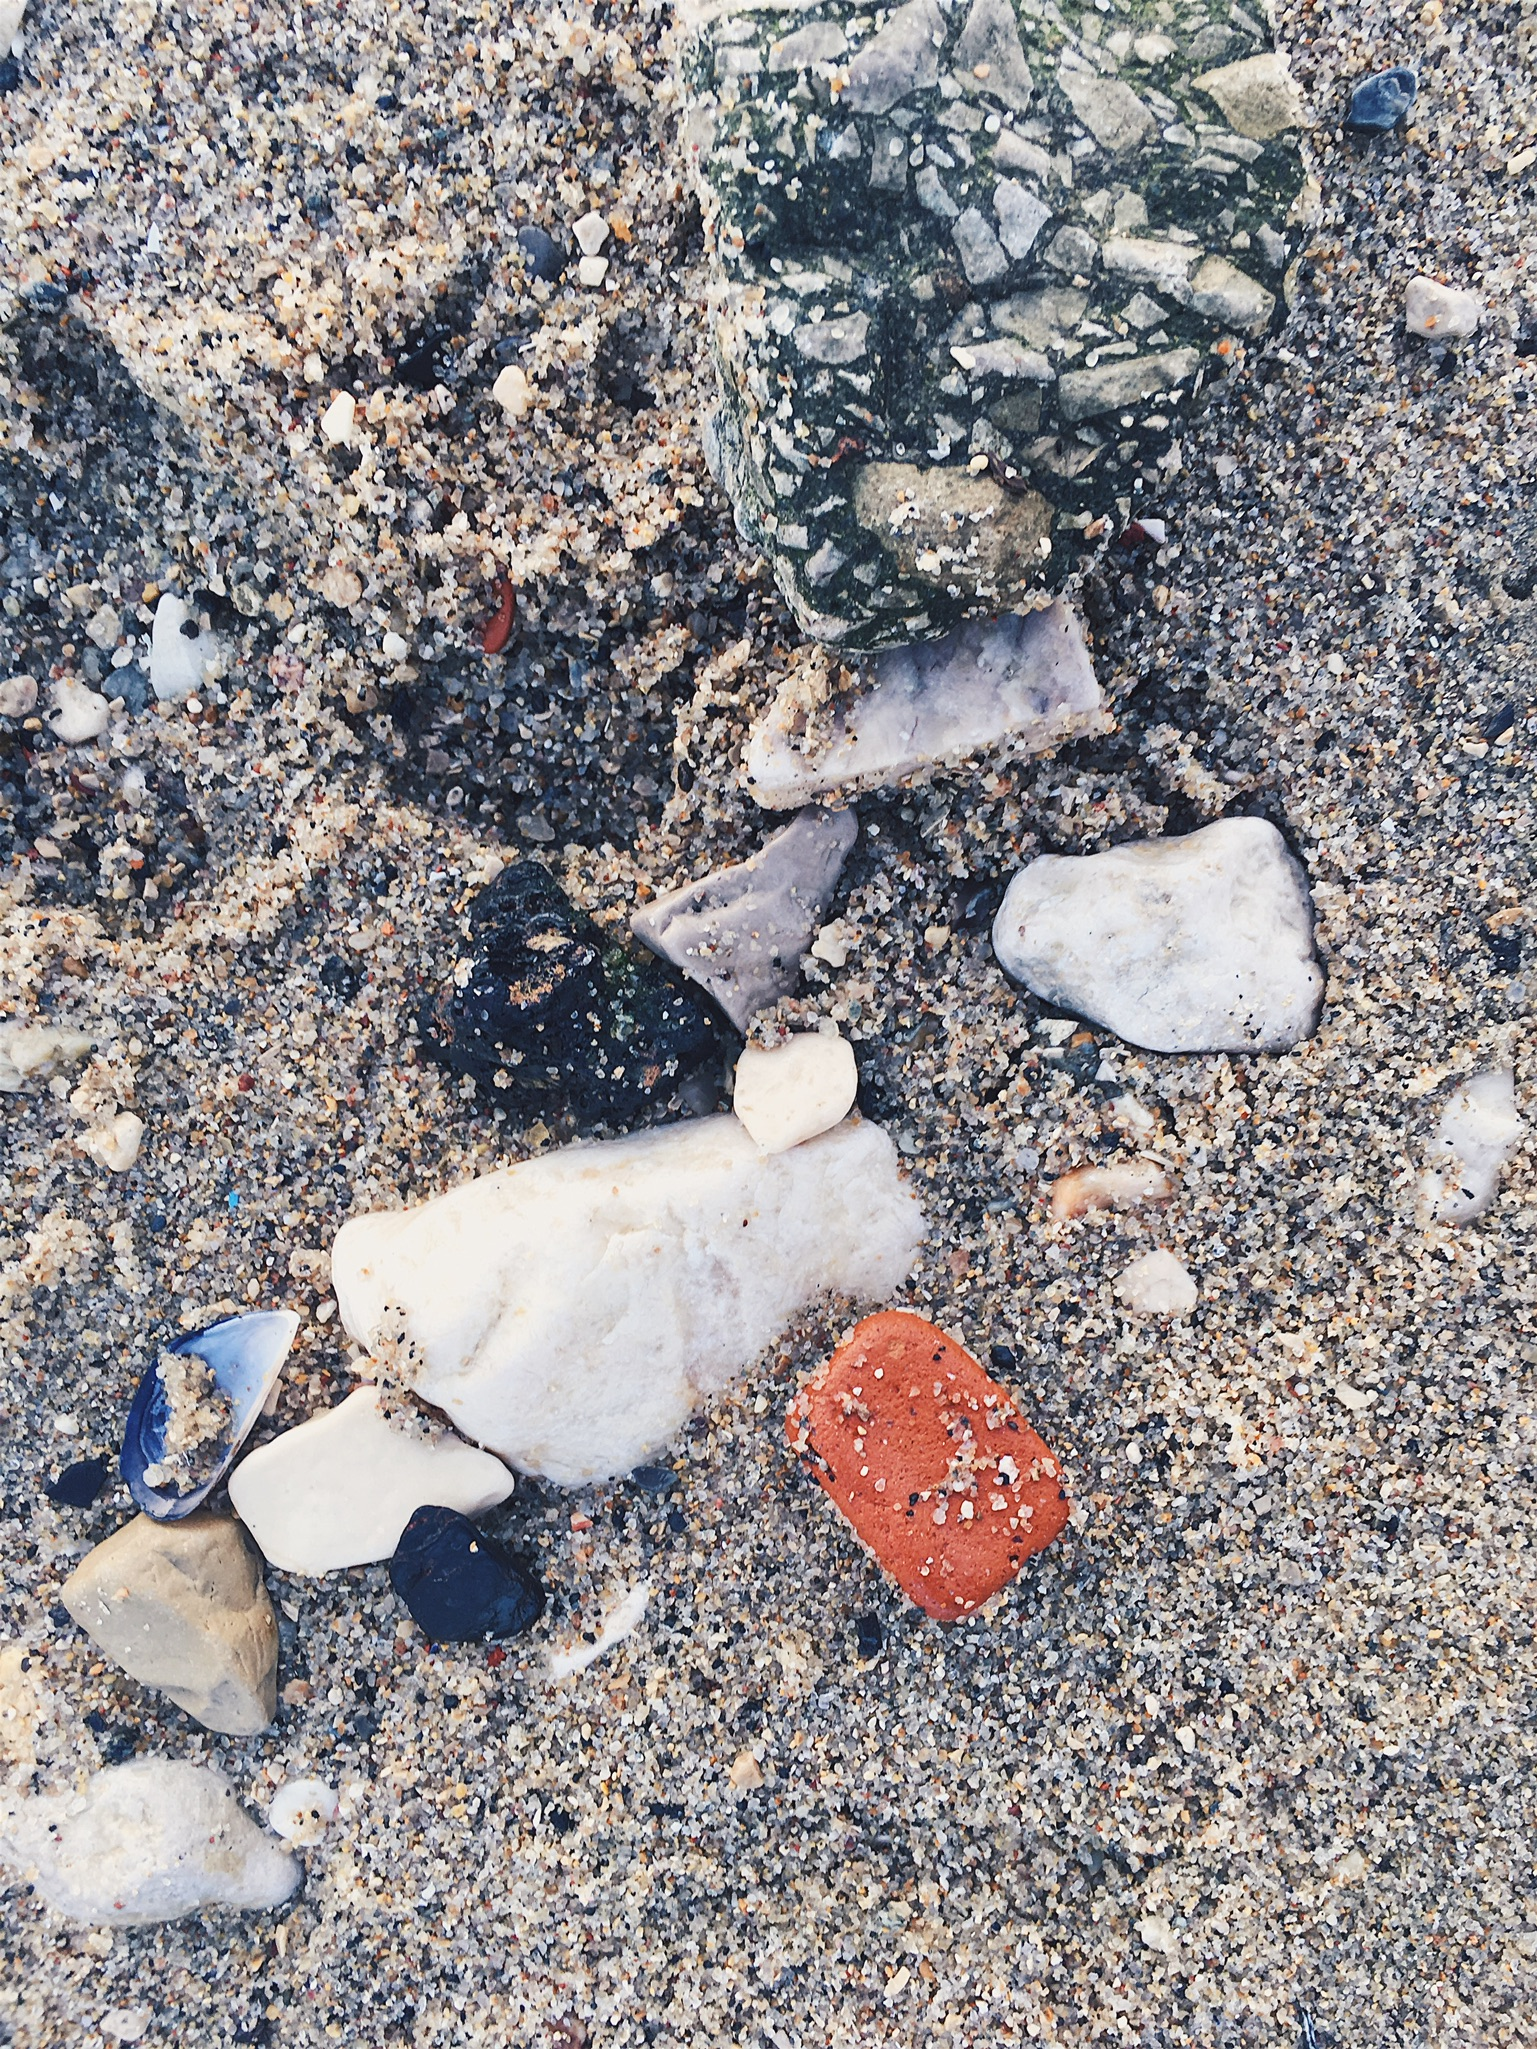 A closeup of treasures in the sand: pieces of brick, tile, shells, cement, and stones; Also a piece of conglomerate